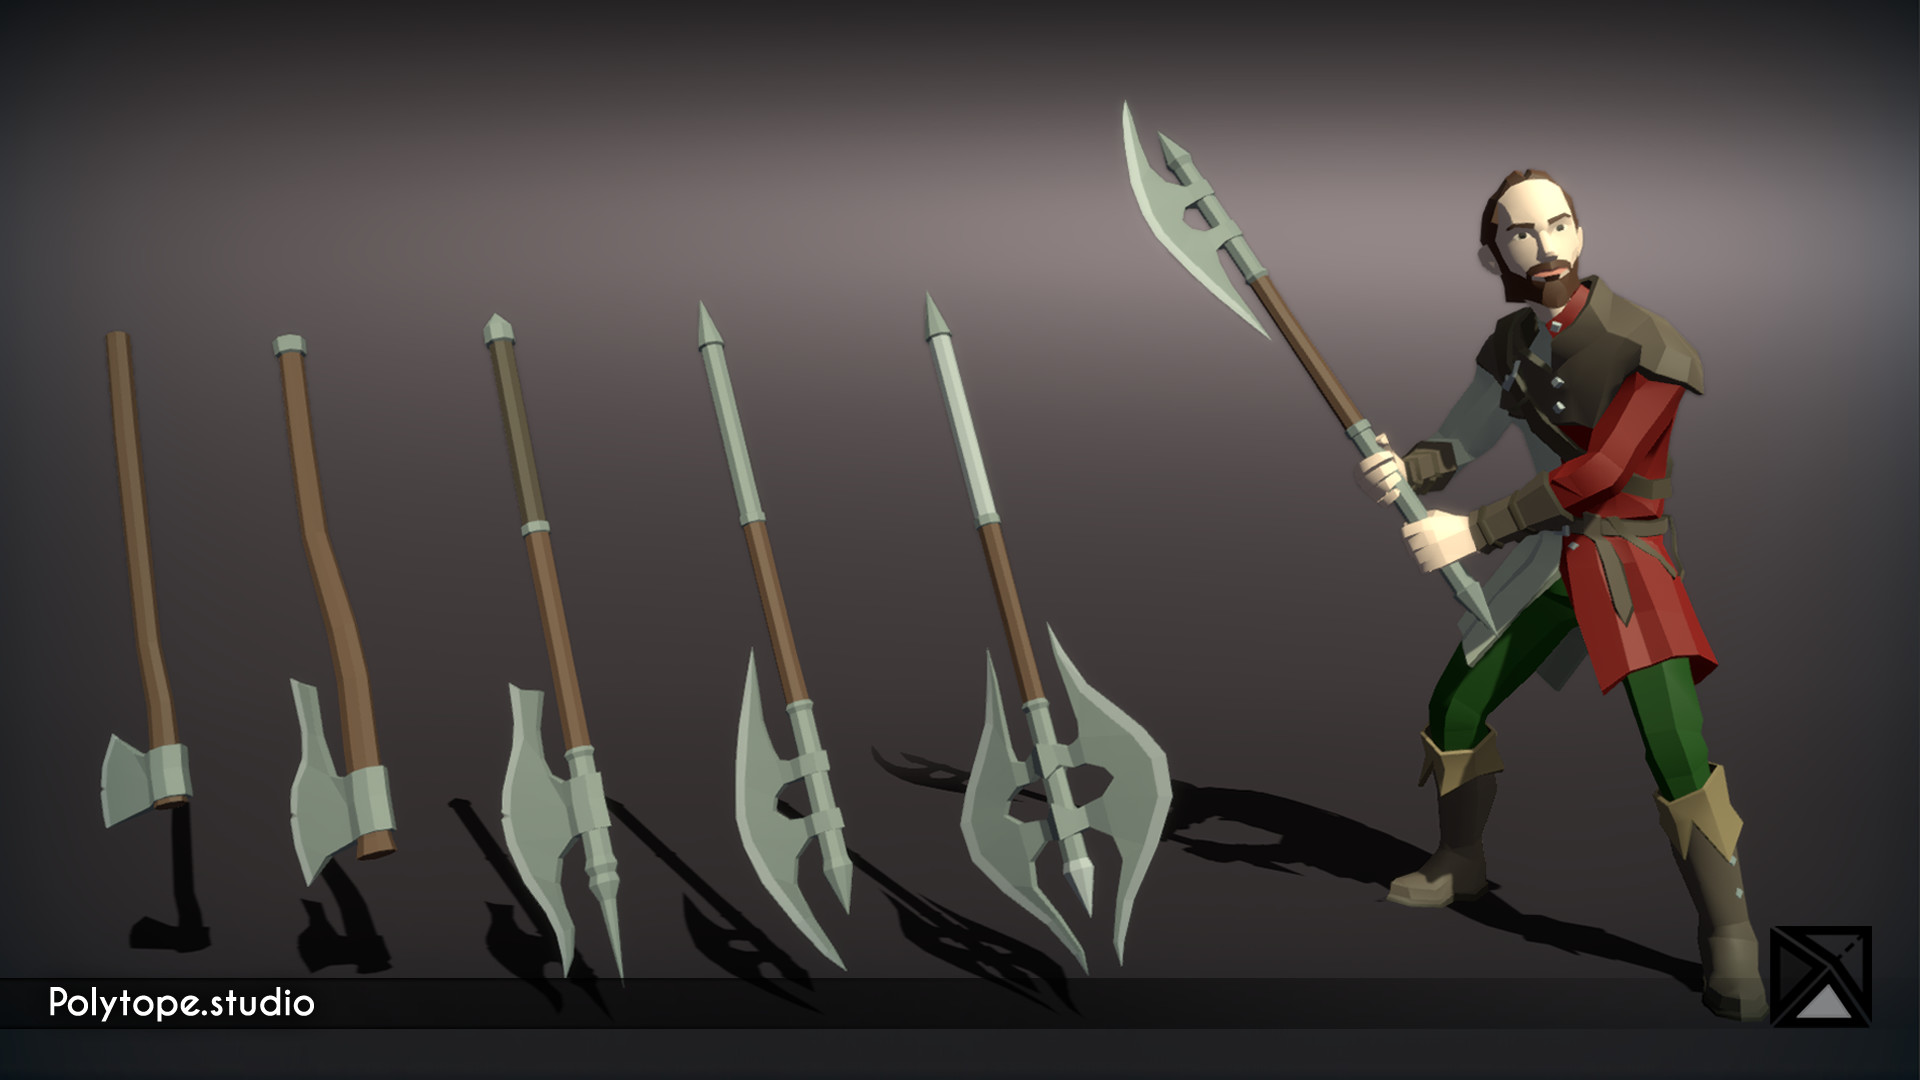 Polytope studio pt medieval lowpoly weapons waraxe large